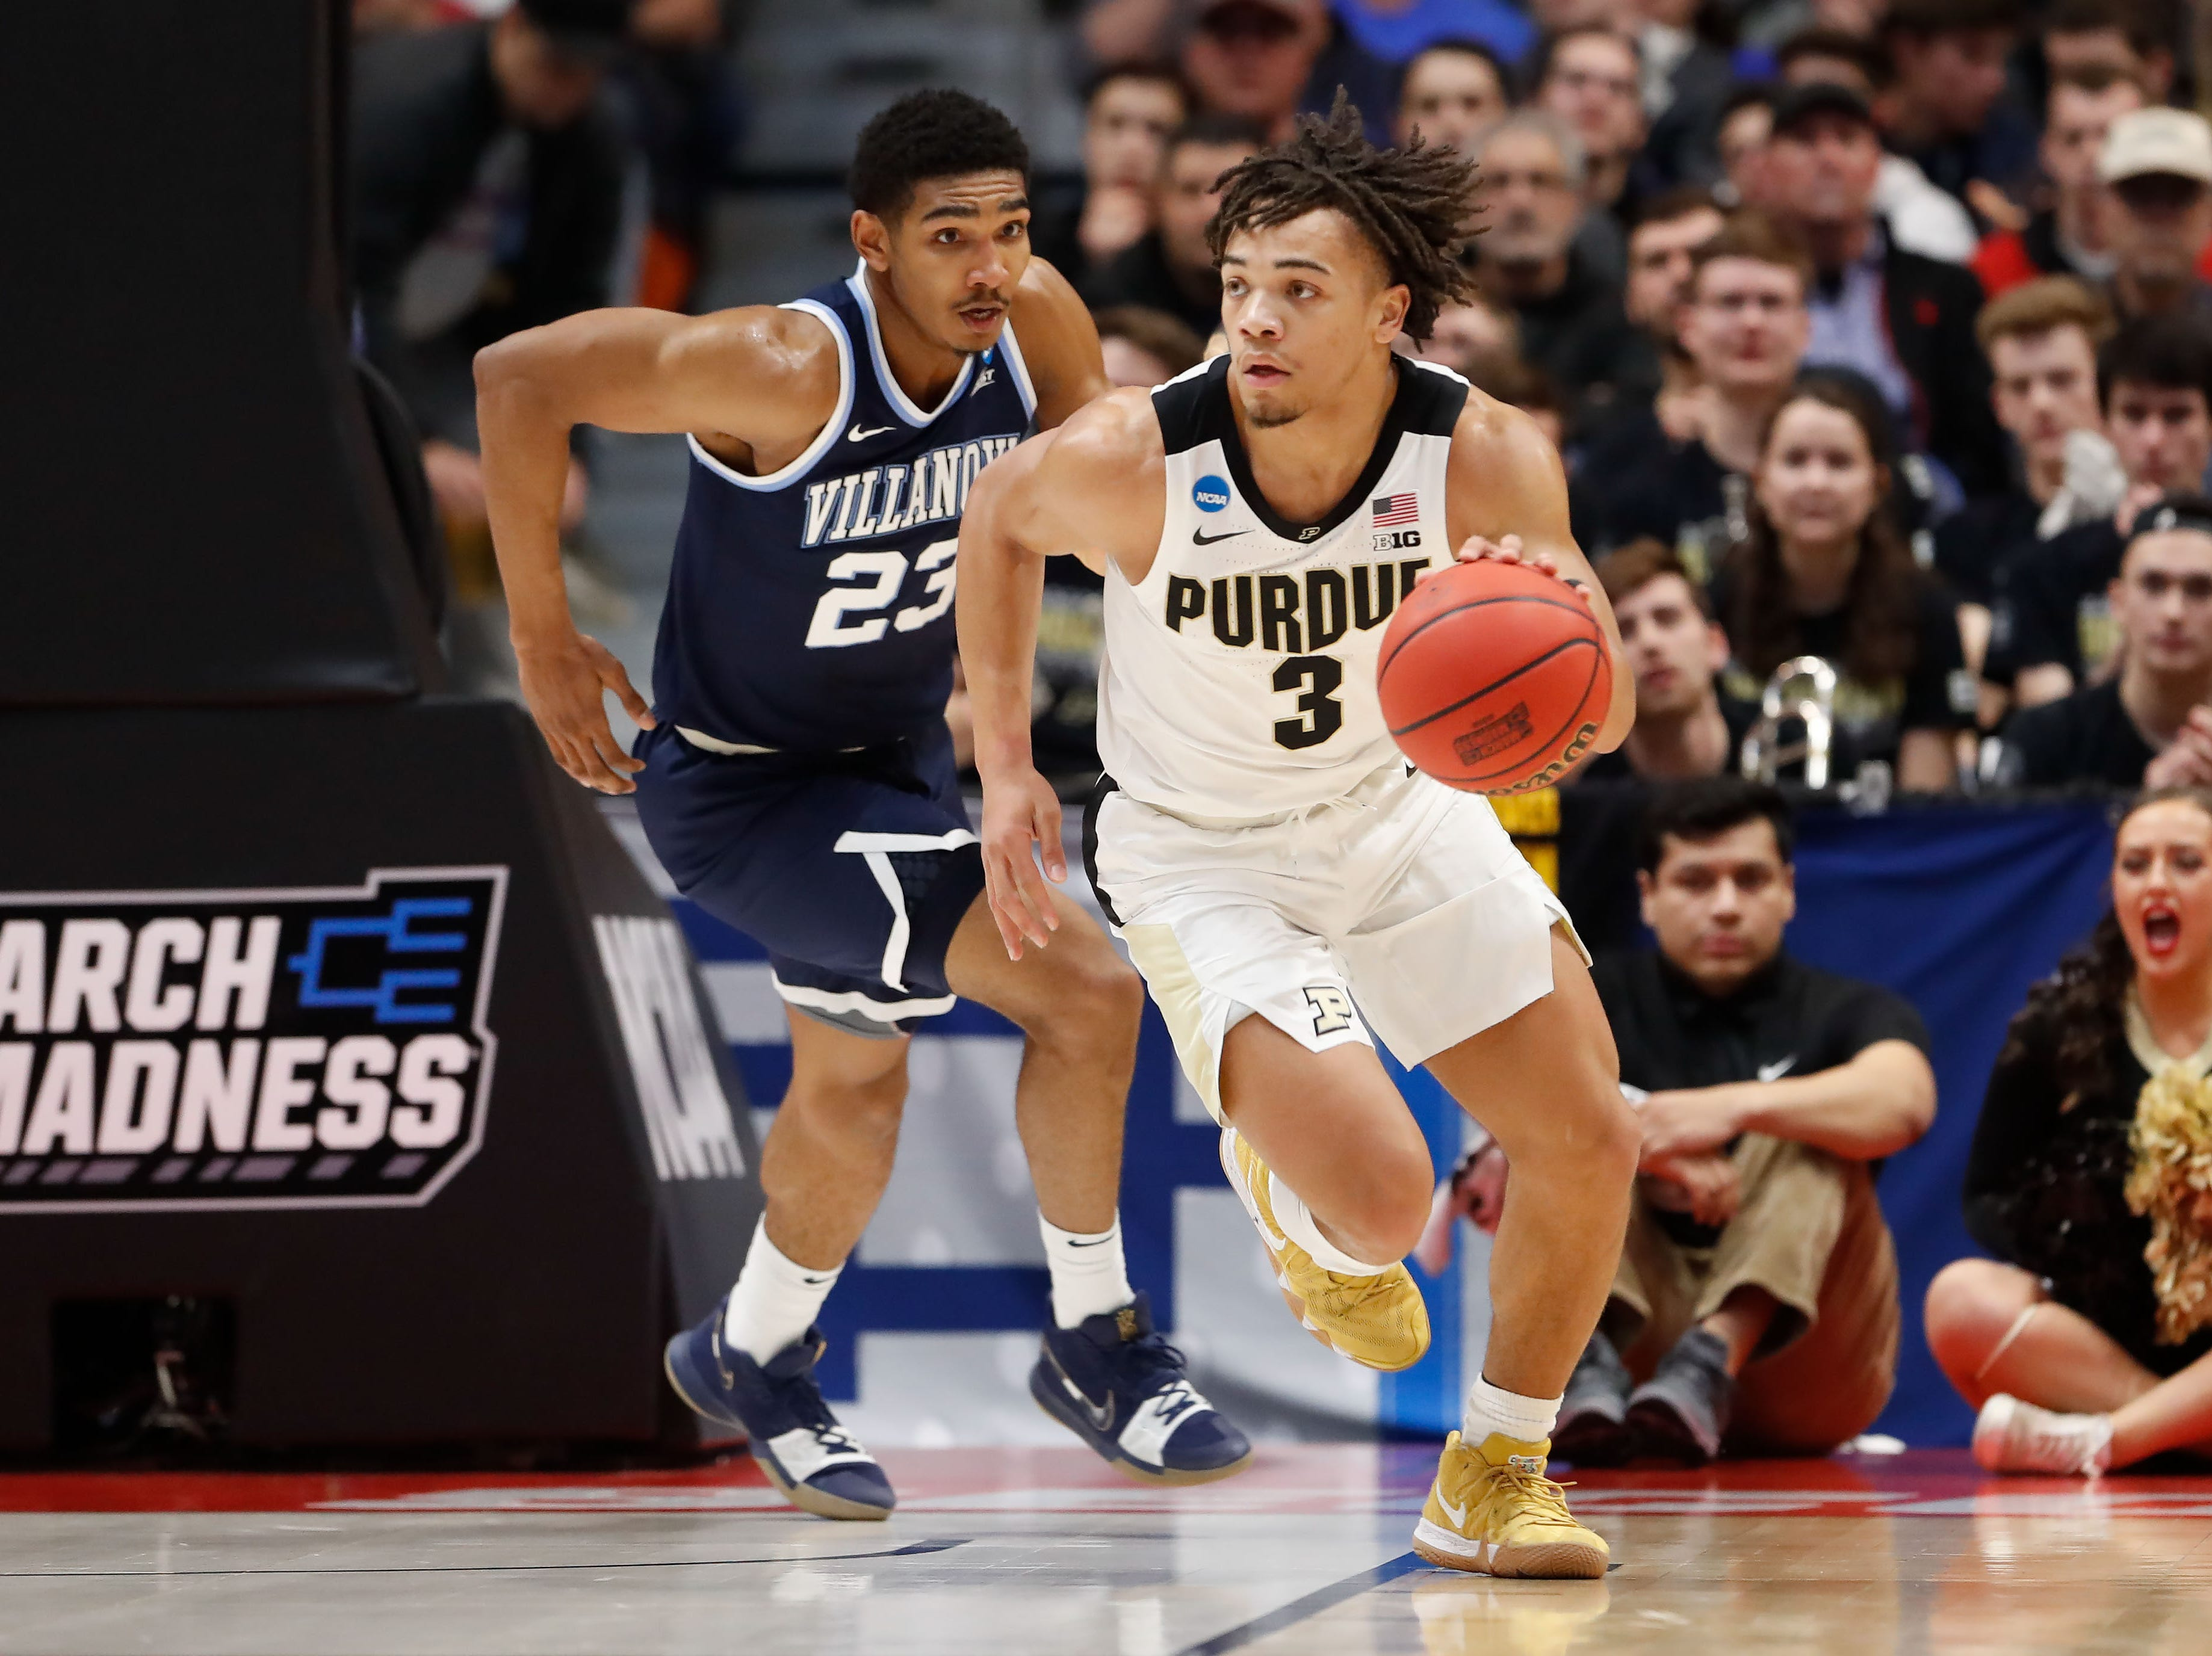 Mar 23, 2019; Hartford, CT, USA; Purdue Boilermakers guard Carsen Edwards (3) dribbles the ball up the court during the first half of a game against the Villanova Wildcats in the second round of the 2019 NCAA Tournament at XL Center. Mandatory Credit: David Butler II-USA TODAY Sports